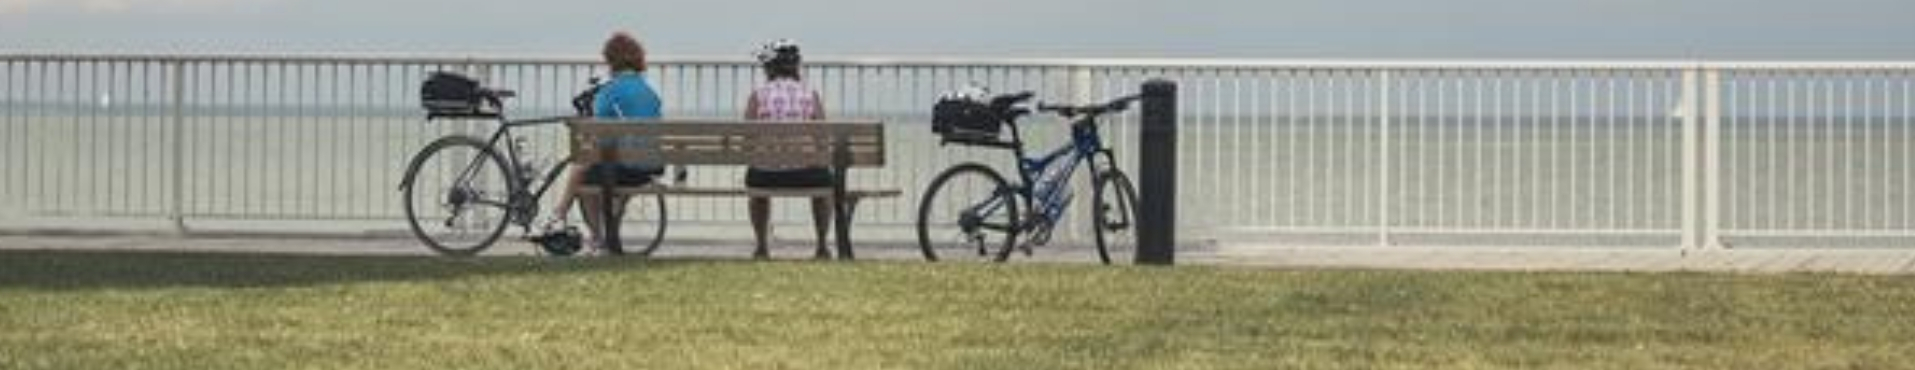 Cyclists resting on bench